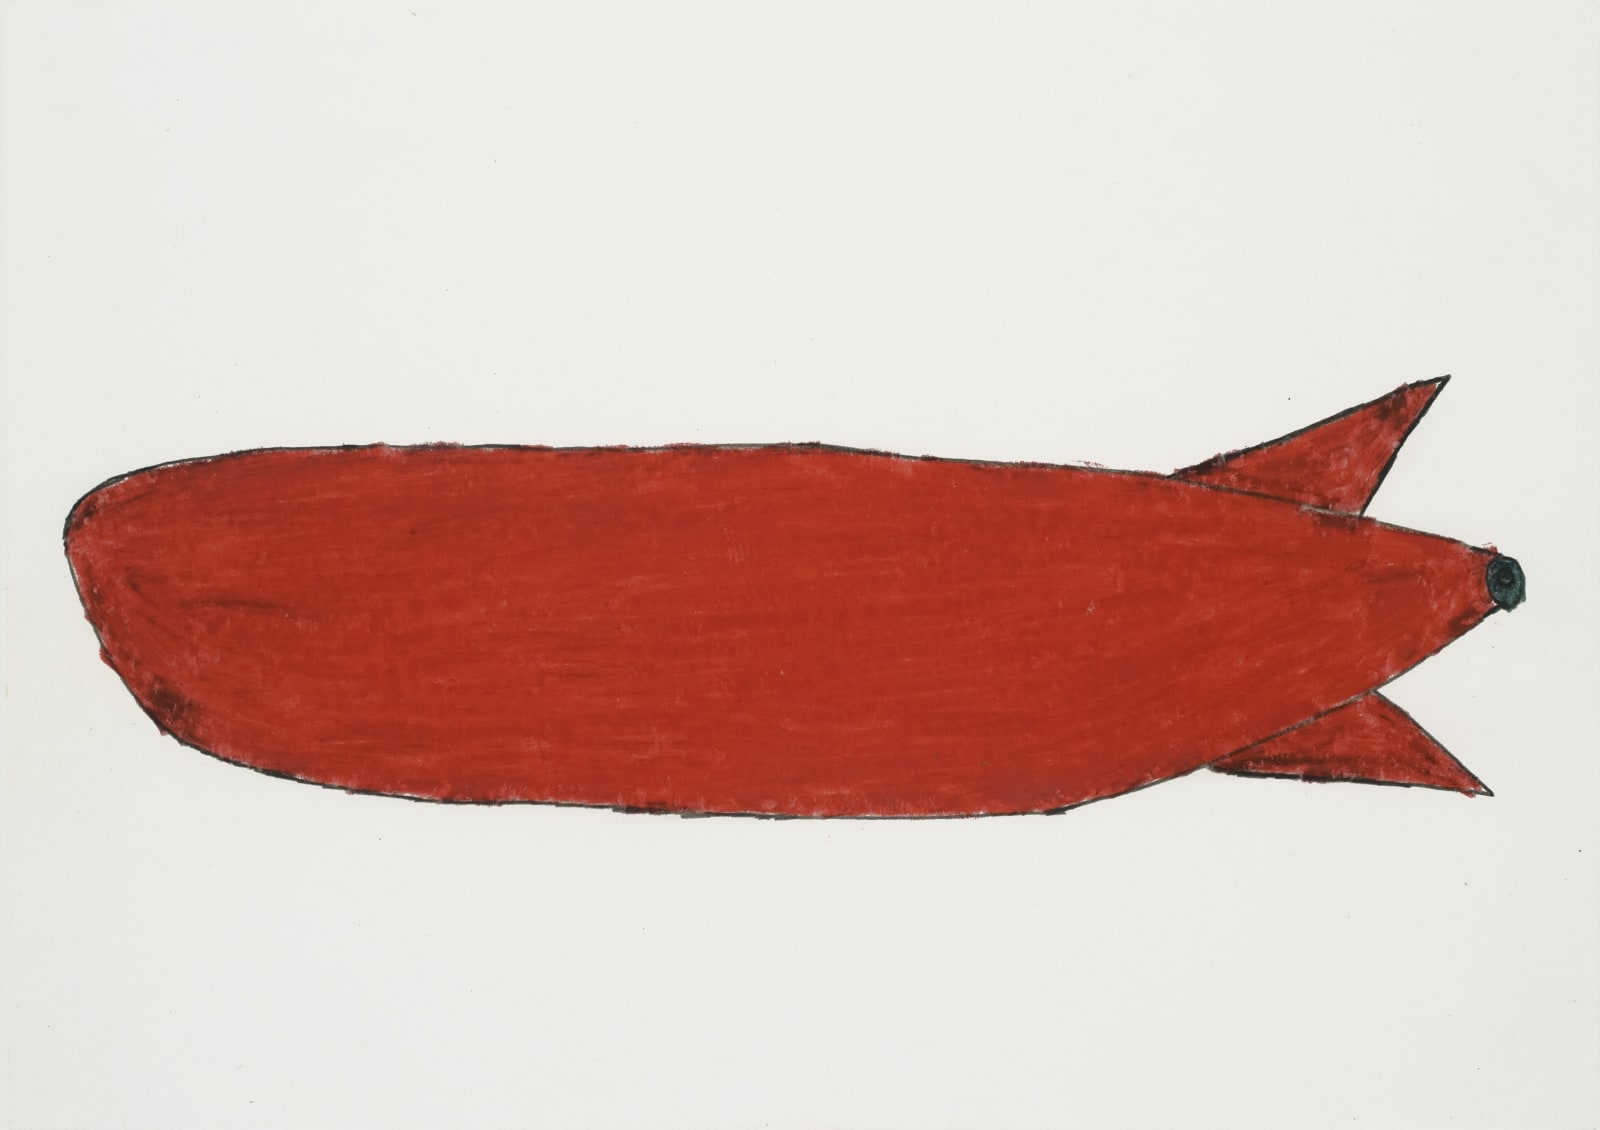 Rocket, 1971 Colored pencil and graphite on paper 8.25 x 11.5 in. (21 x 29.2 cm.) (JH 8) [Private Collection]